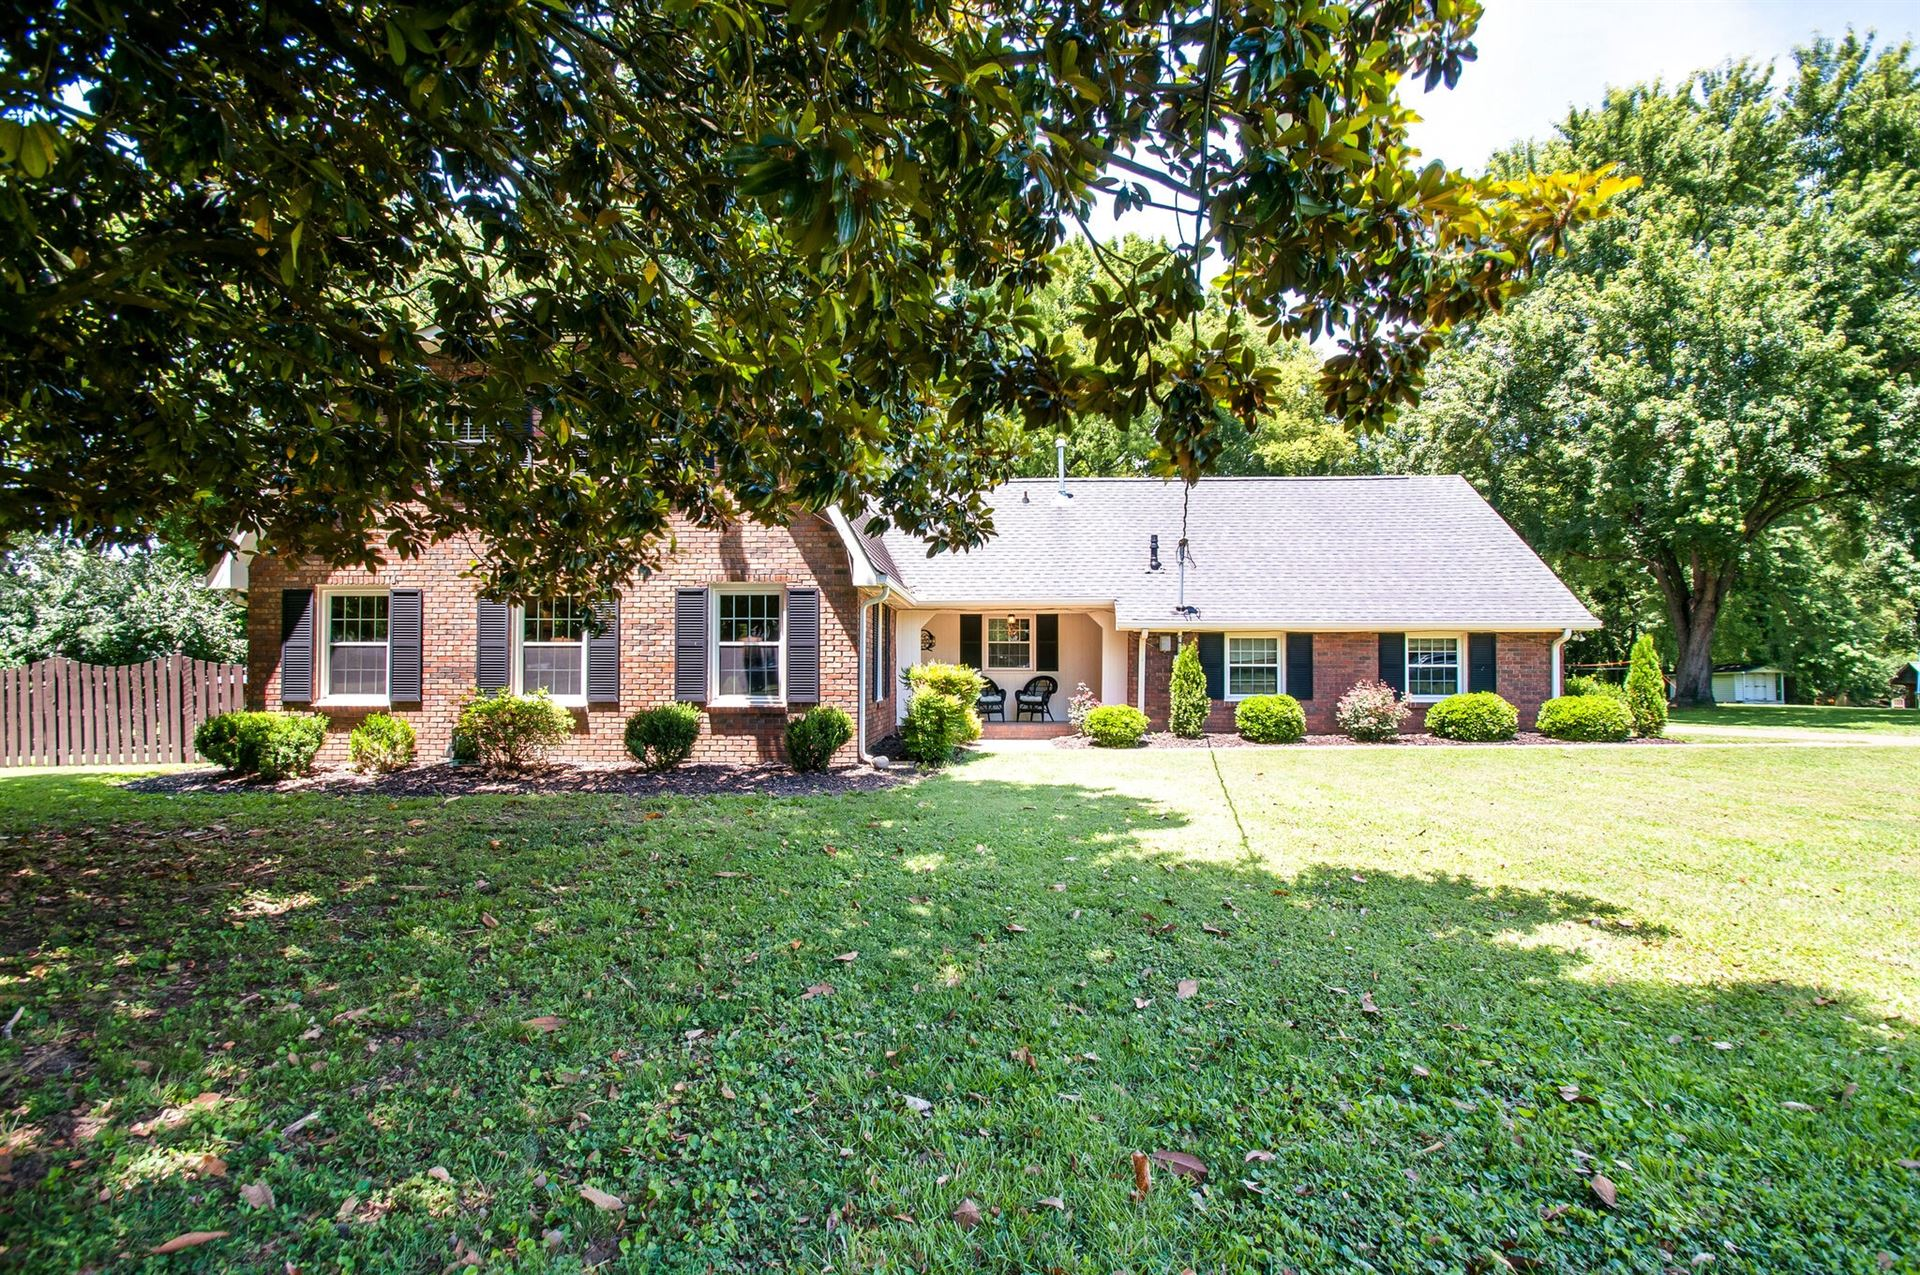 Photo of 1307 Haber Dr, Brentwood, TN 37027 (MLS # 2166573)